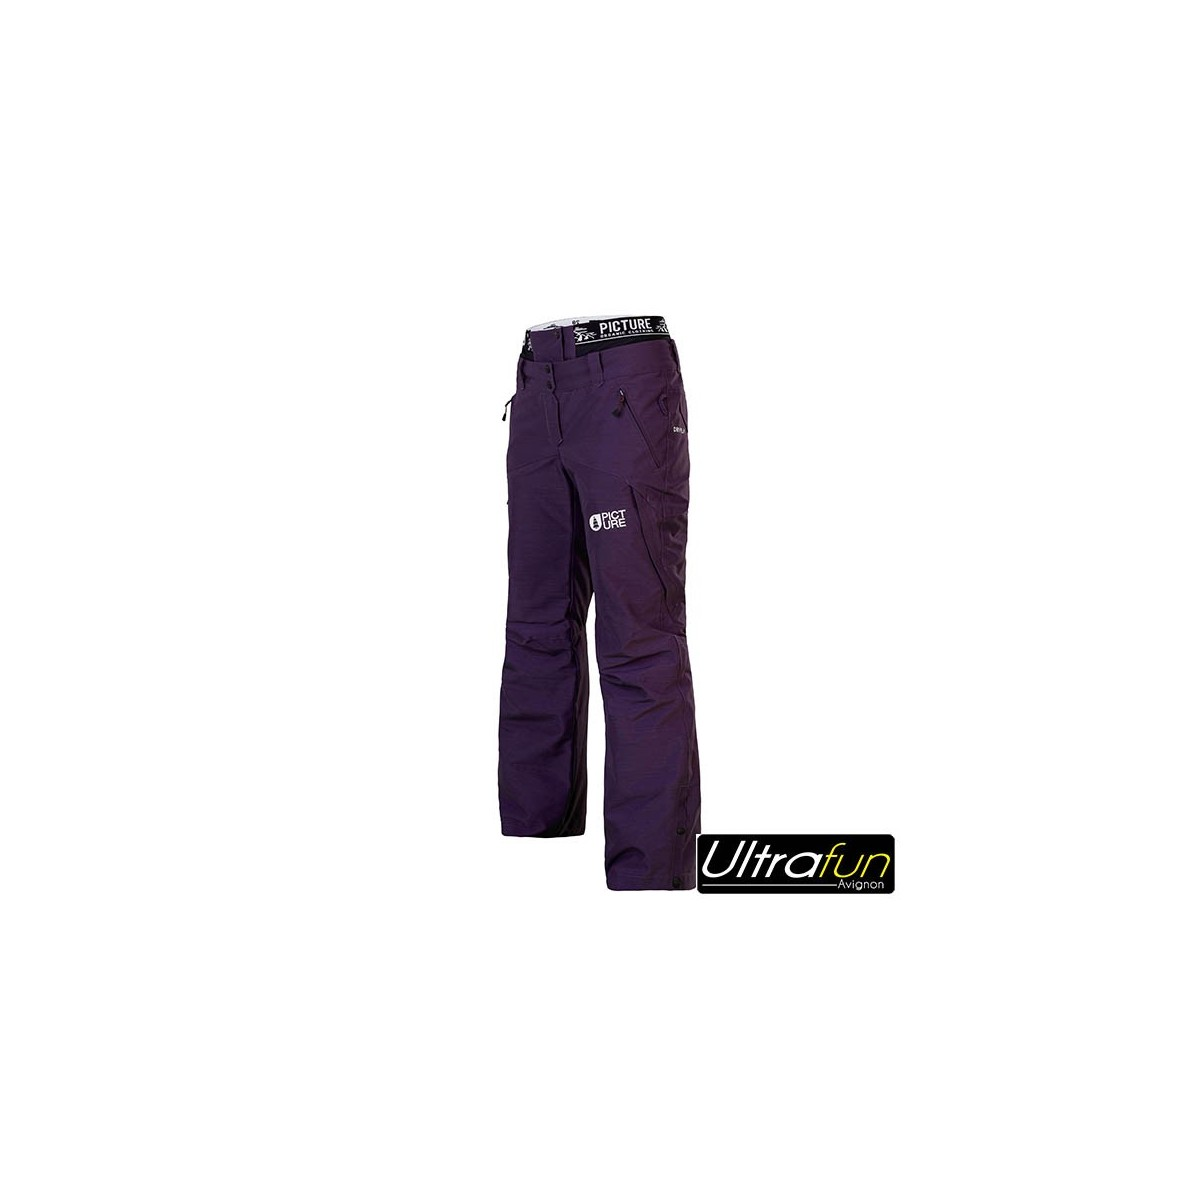 Picture Pantalon Purple Femme Ski Treva De Yvgyb76If